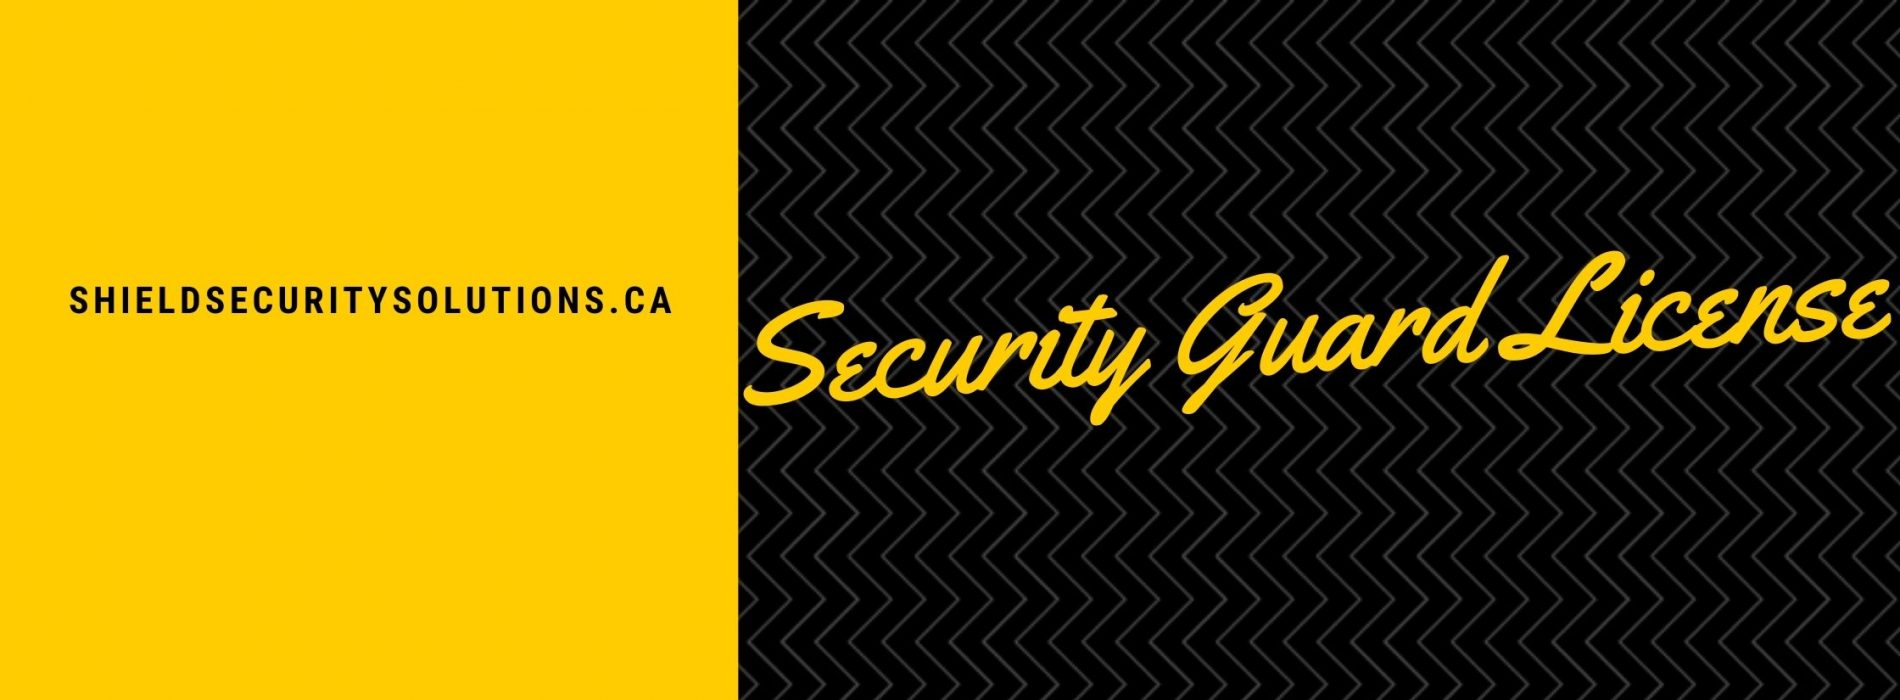 Security Guard License – Why You Need It